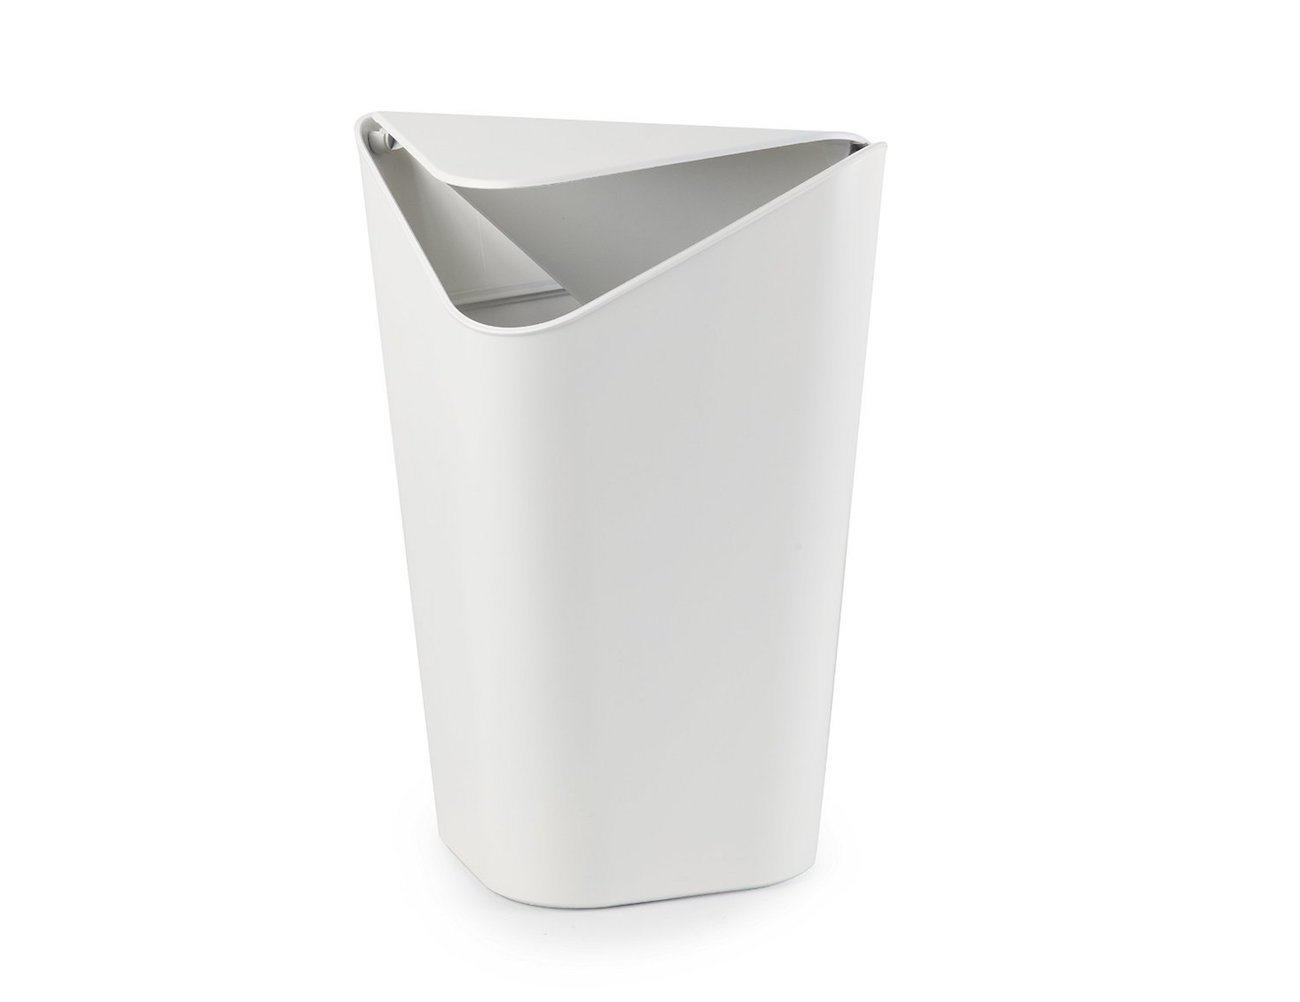 Corner Waste Bin – Perfect Waste Bin for Corners